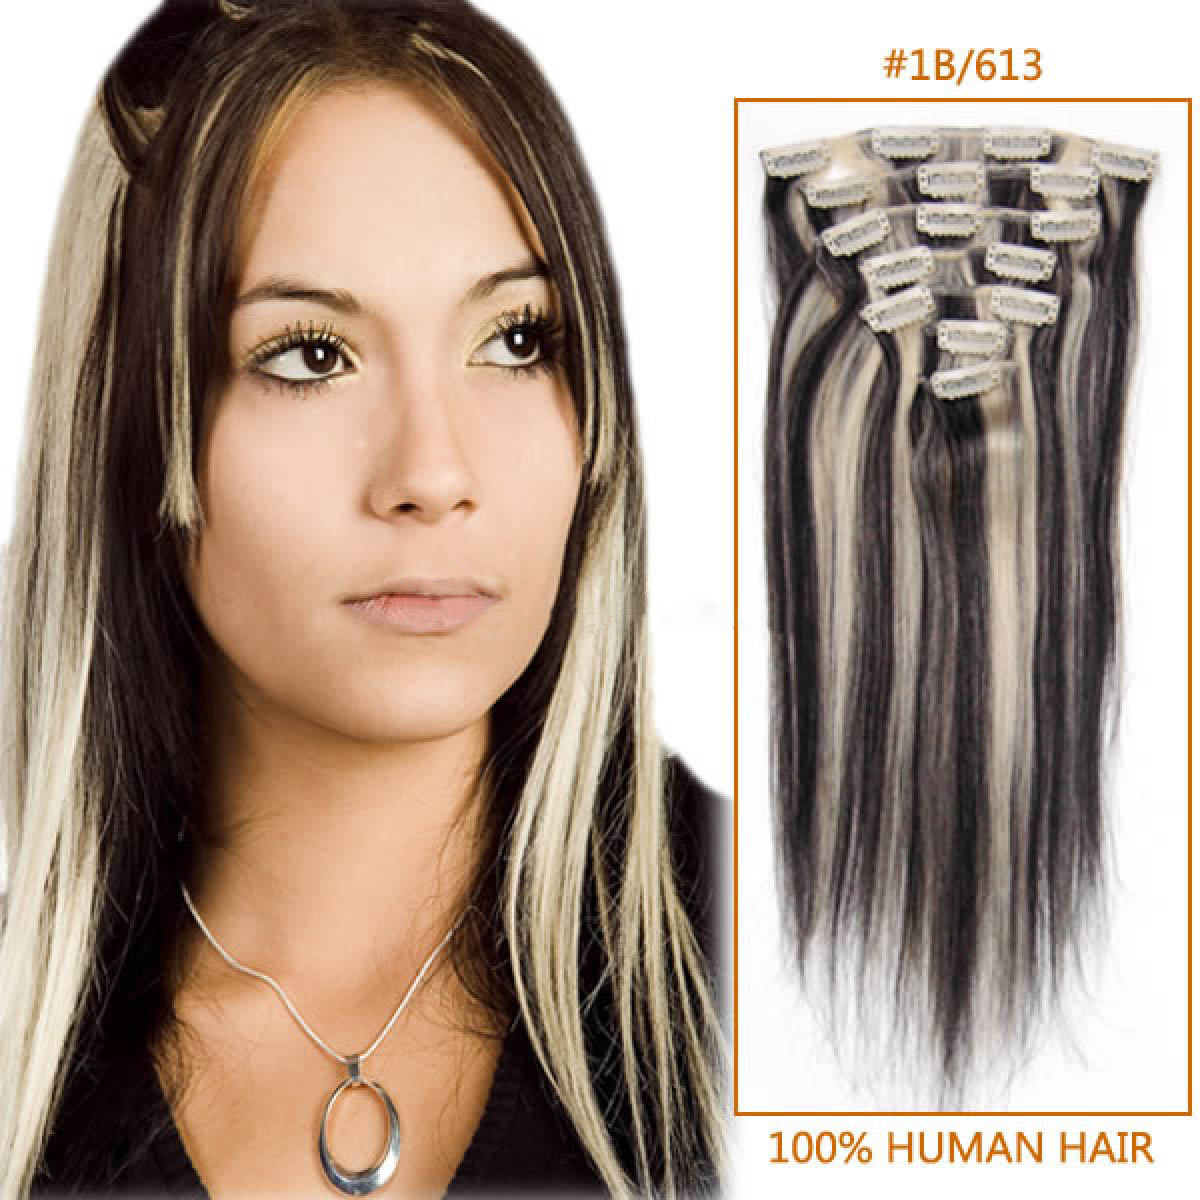 Inch 1b613 clip in human hair extensions 8pcs 30 inch 1b613 clip in human hair extensions 8pcs pmusecretfo Gallery